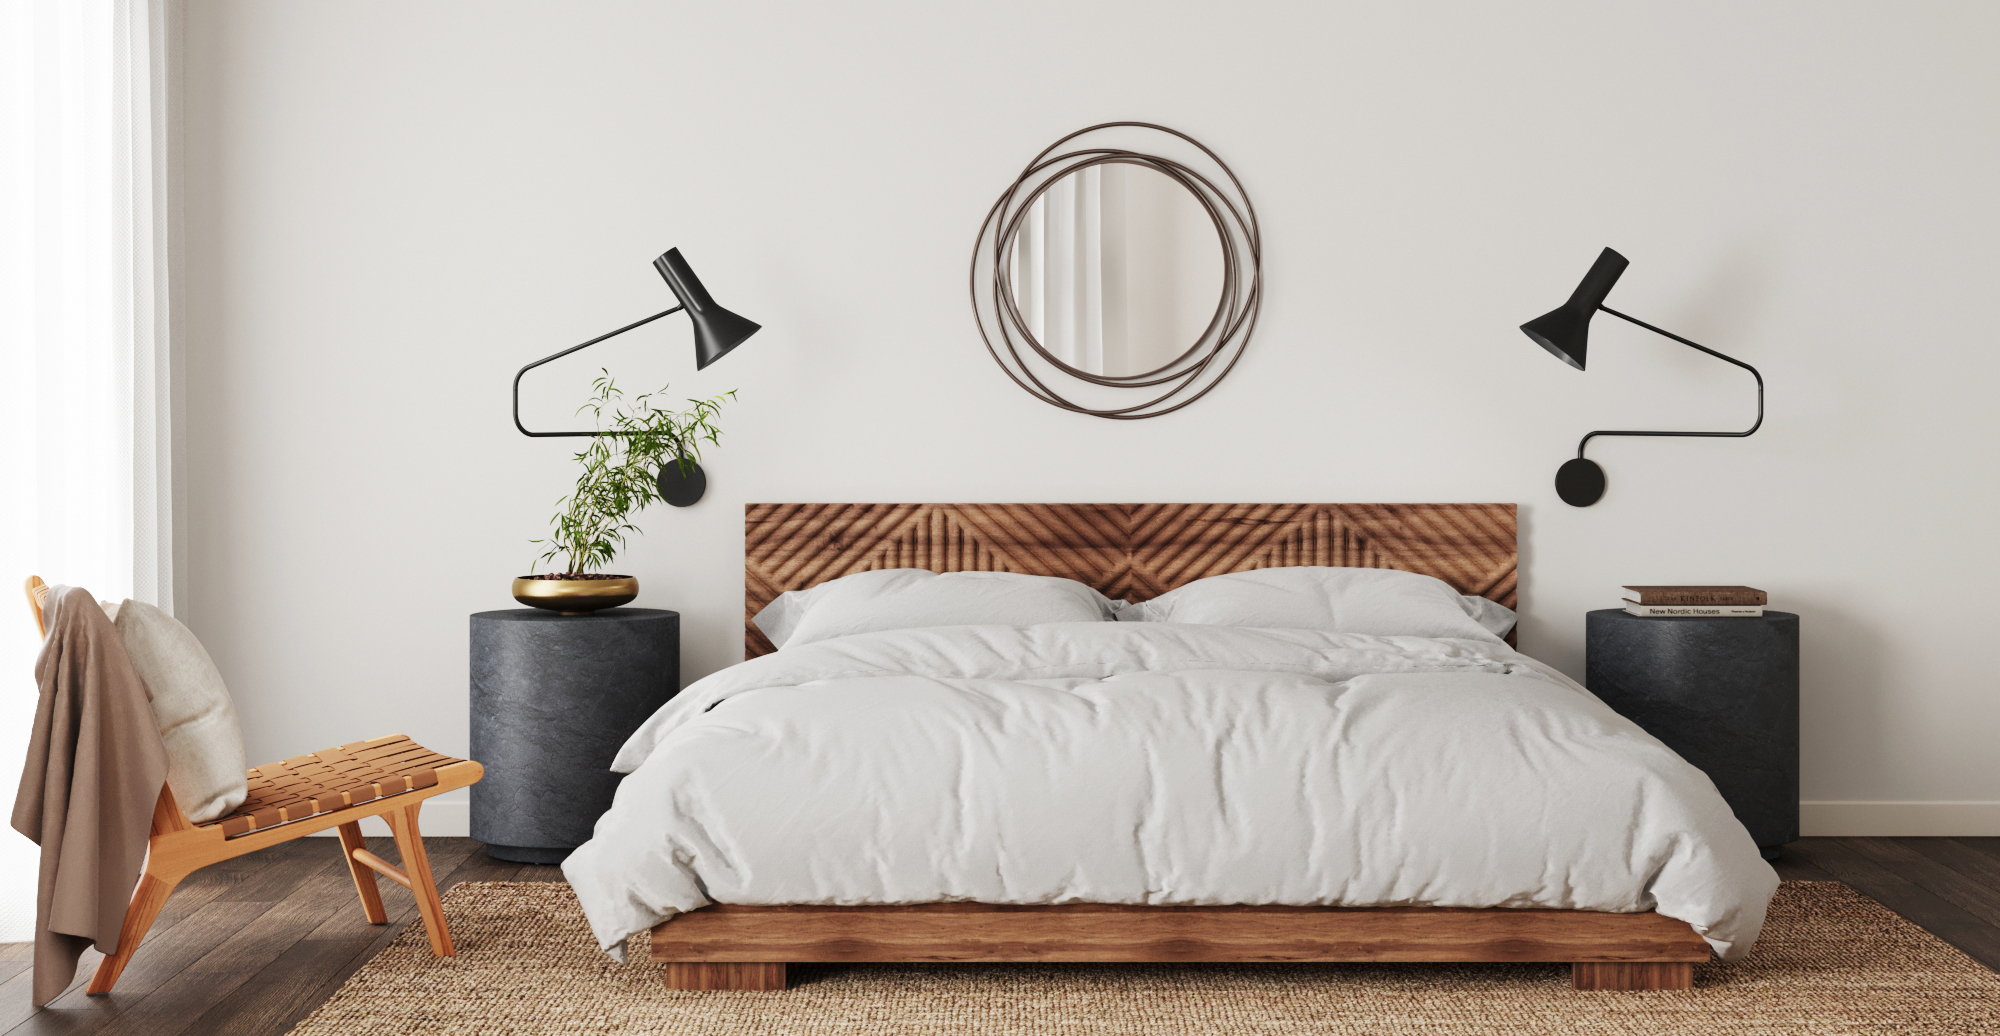 Brosa Marlon Queen Size Bed Frame styled in mid century modern bedroom